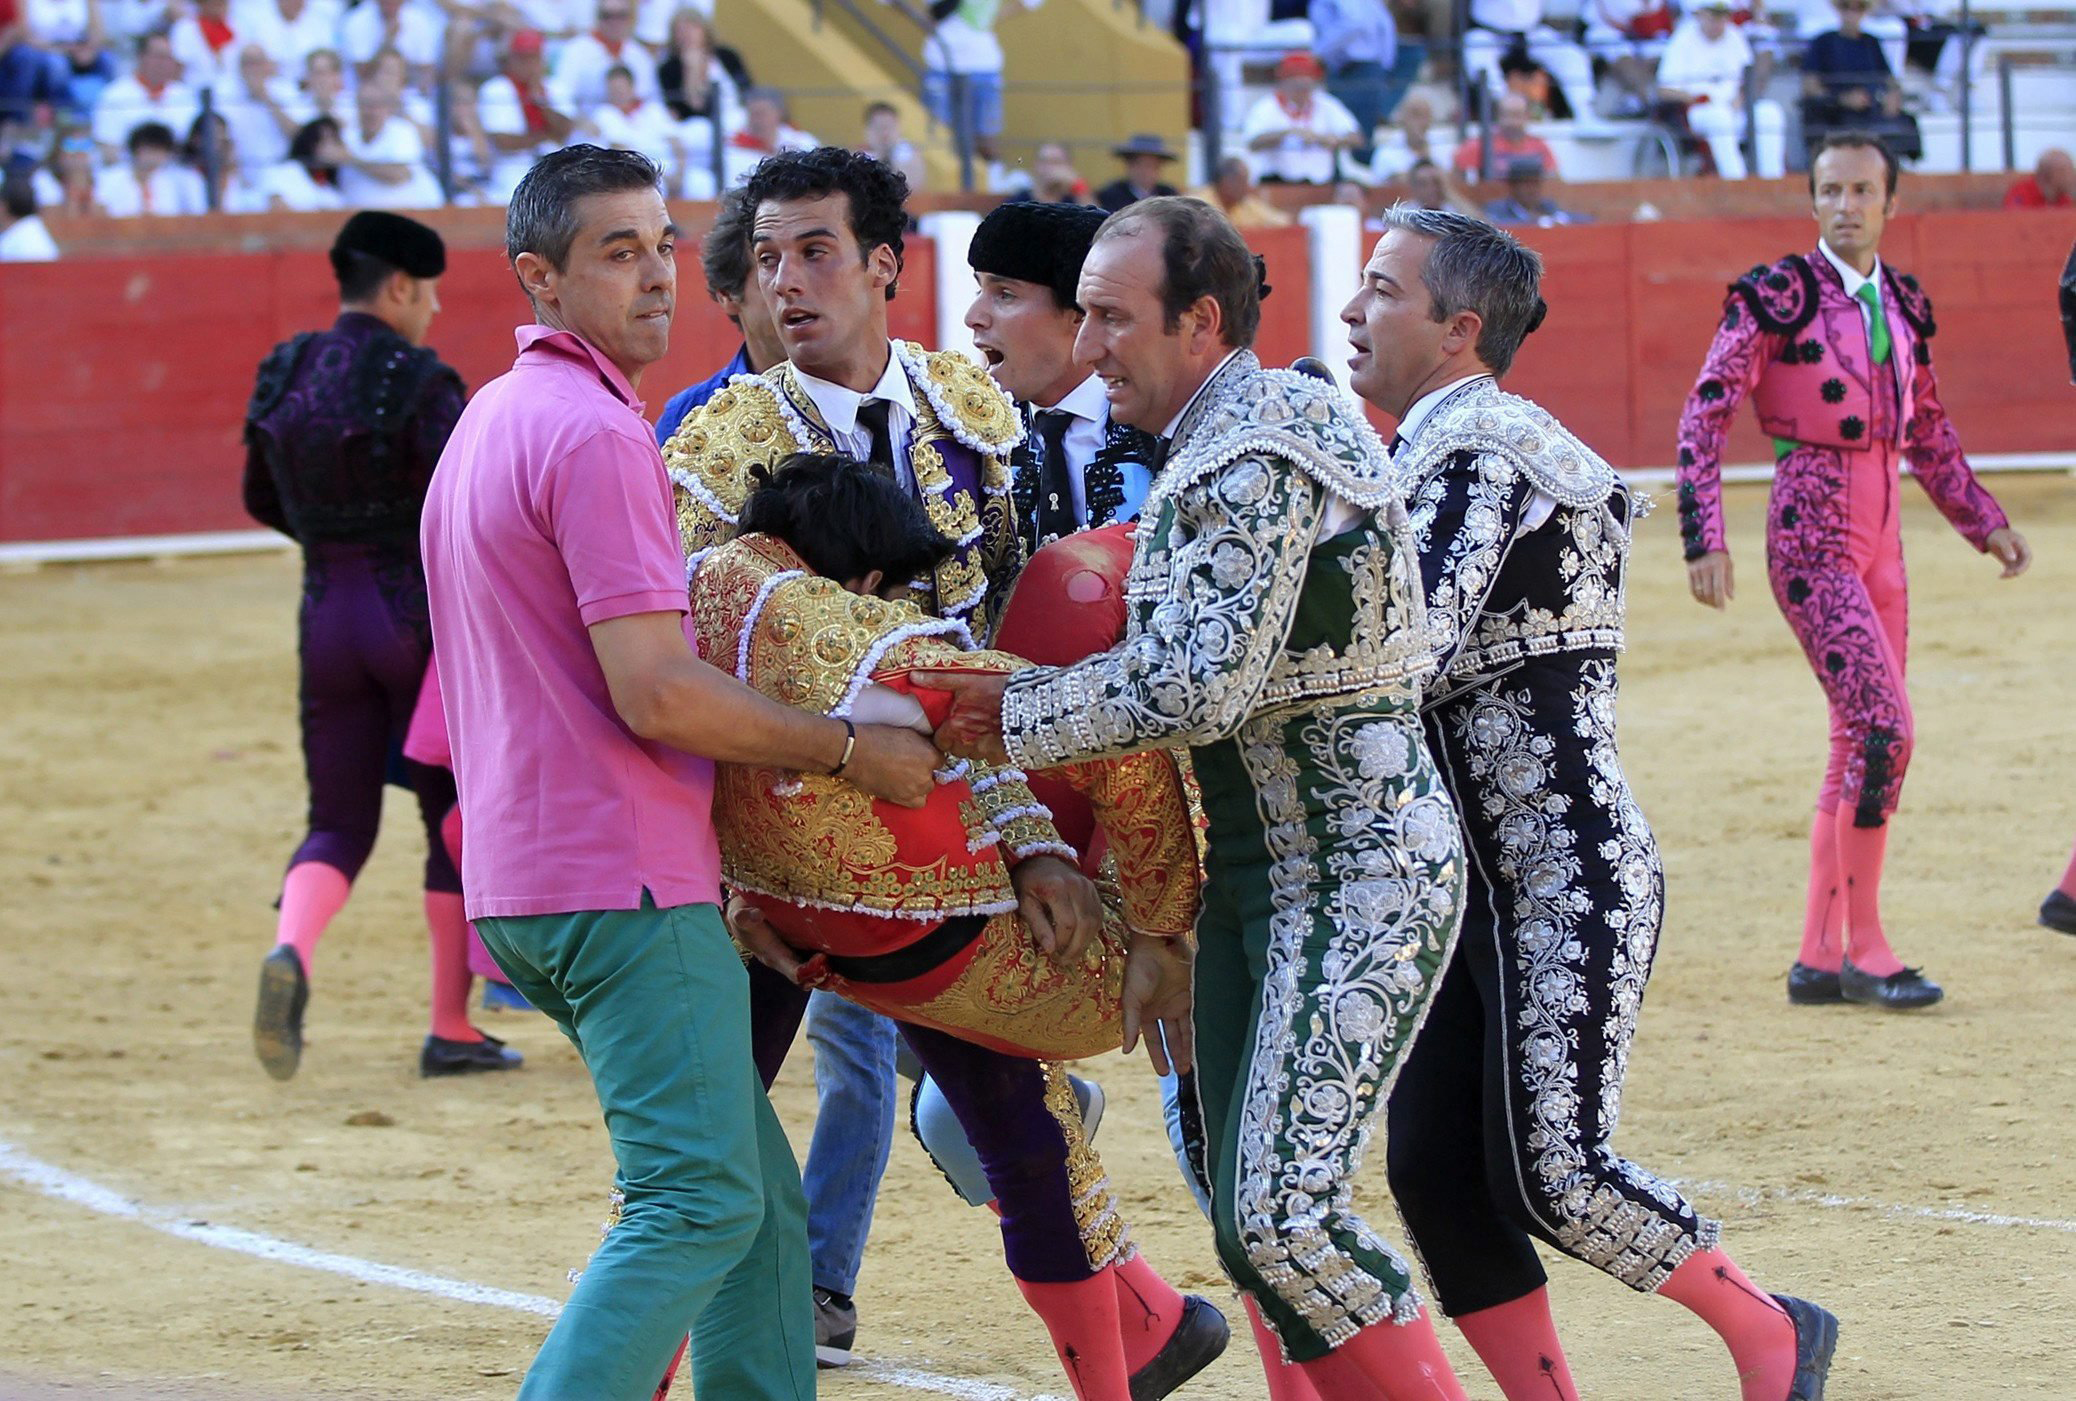 Spanish bullfighter Victor Barrio, 29, is carried out from the bullring after being gored during a bullfight held on the occasion of Feria del Angel in Teruel, Aragon, July 9, 2016.